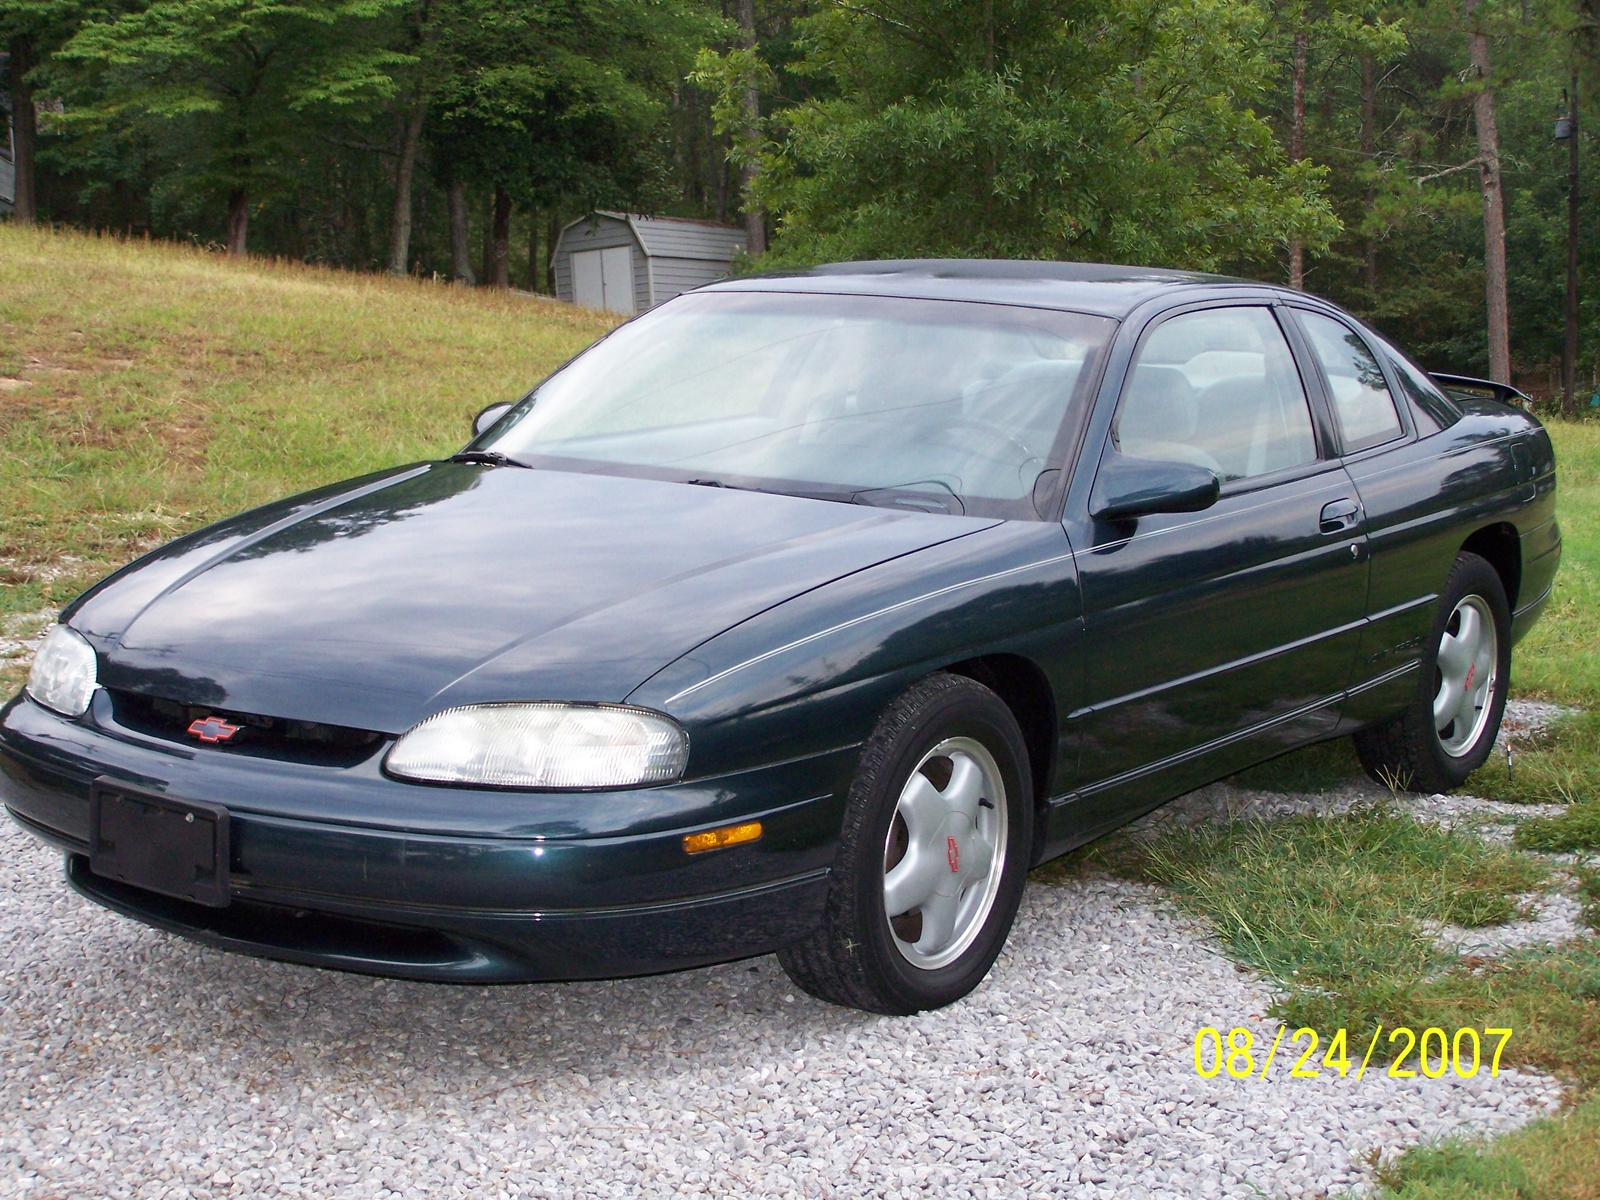 1994 Chevrolet Monte carlo – pictures, information and specs ...